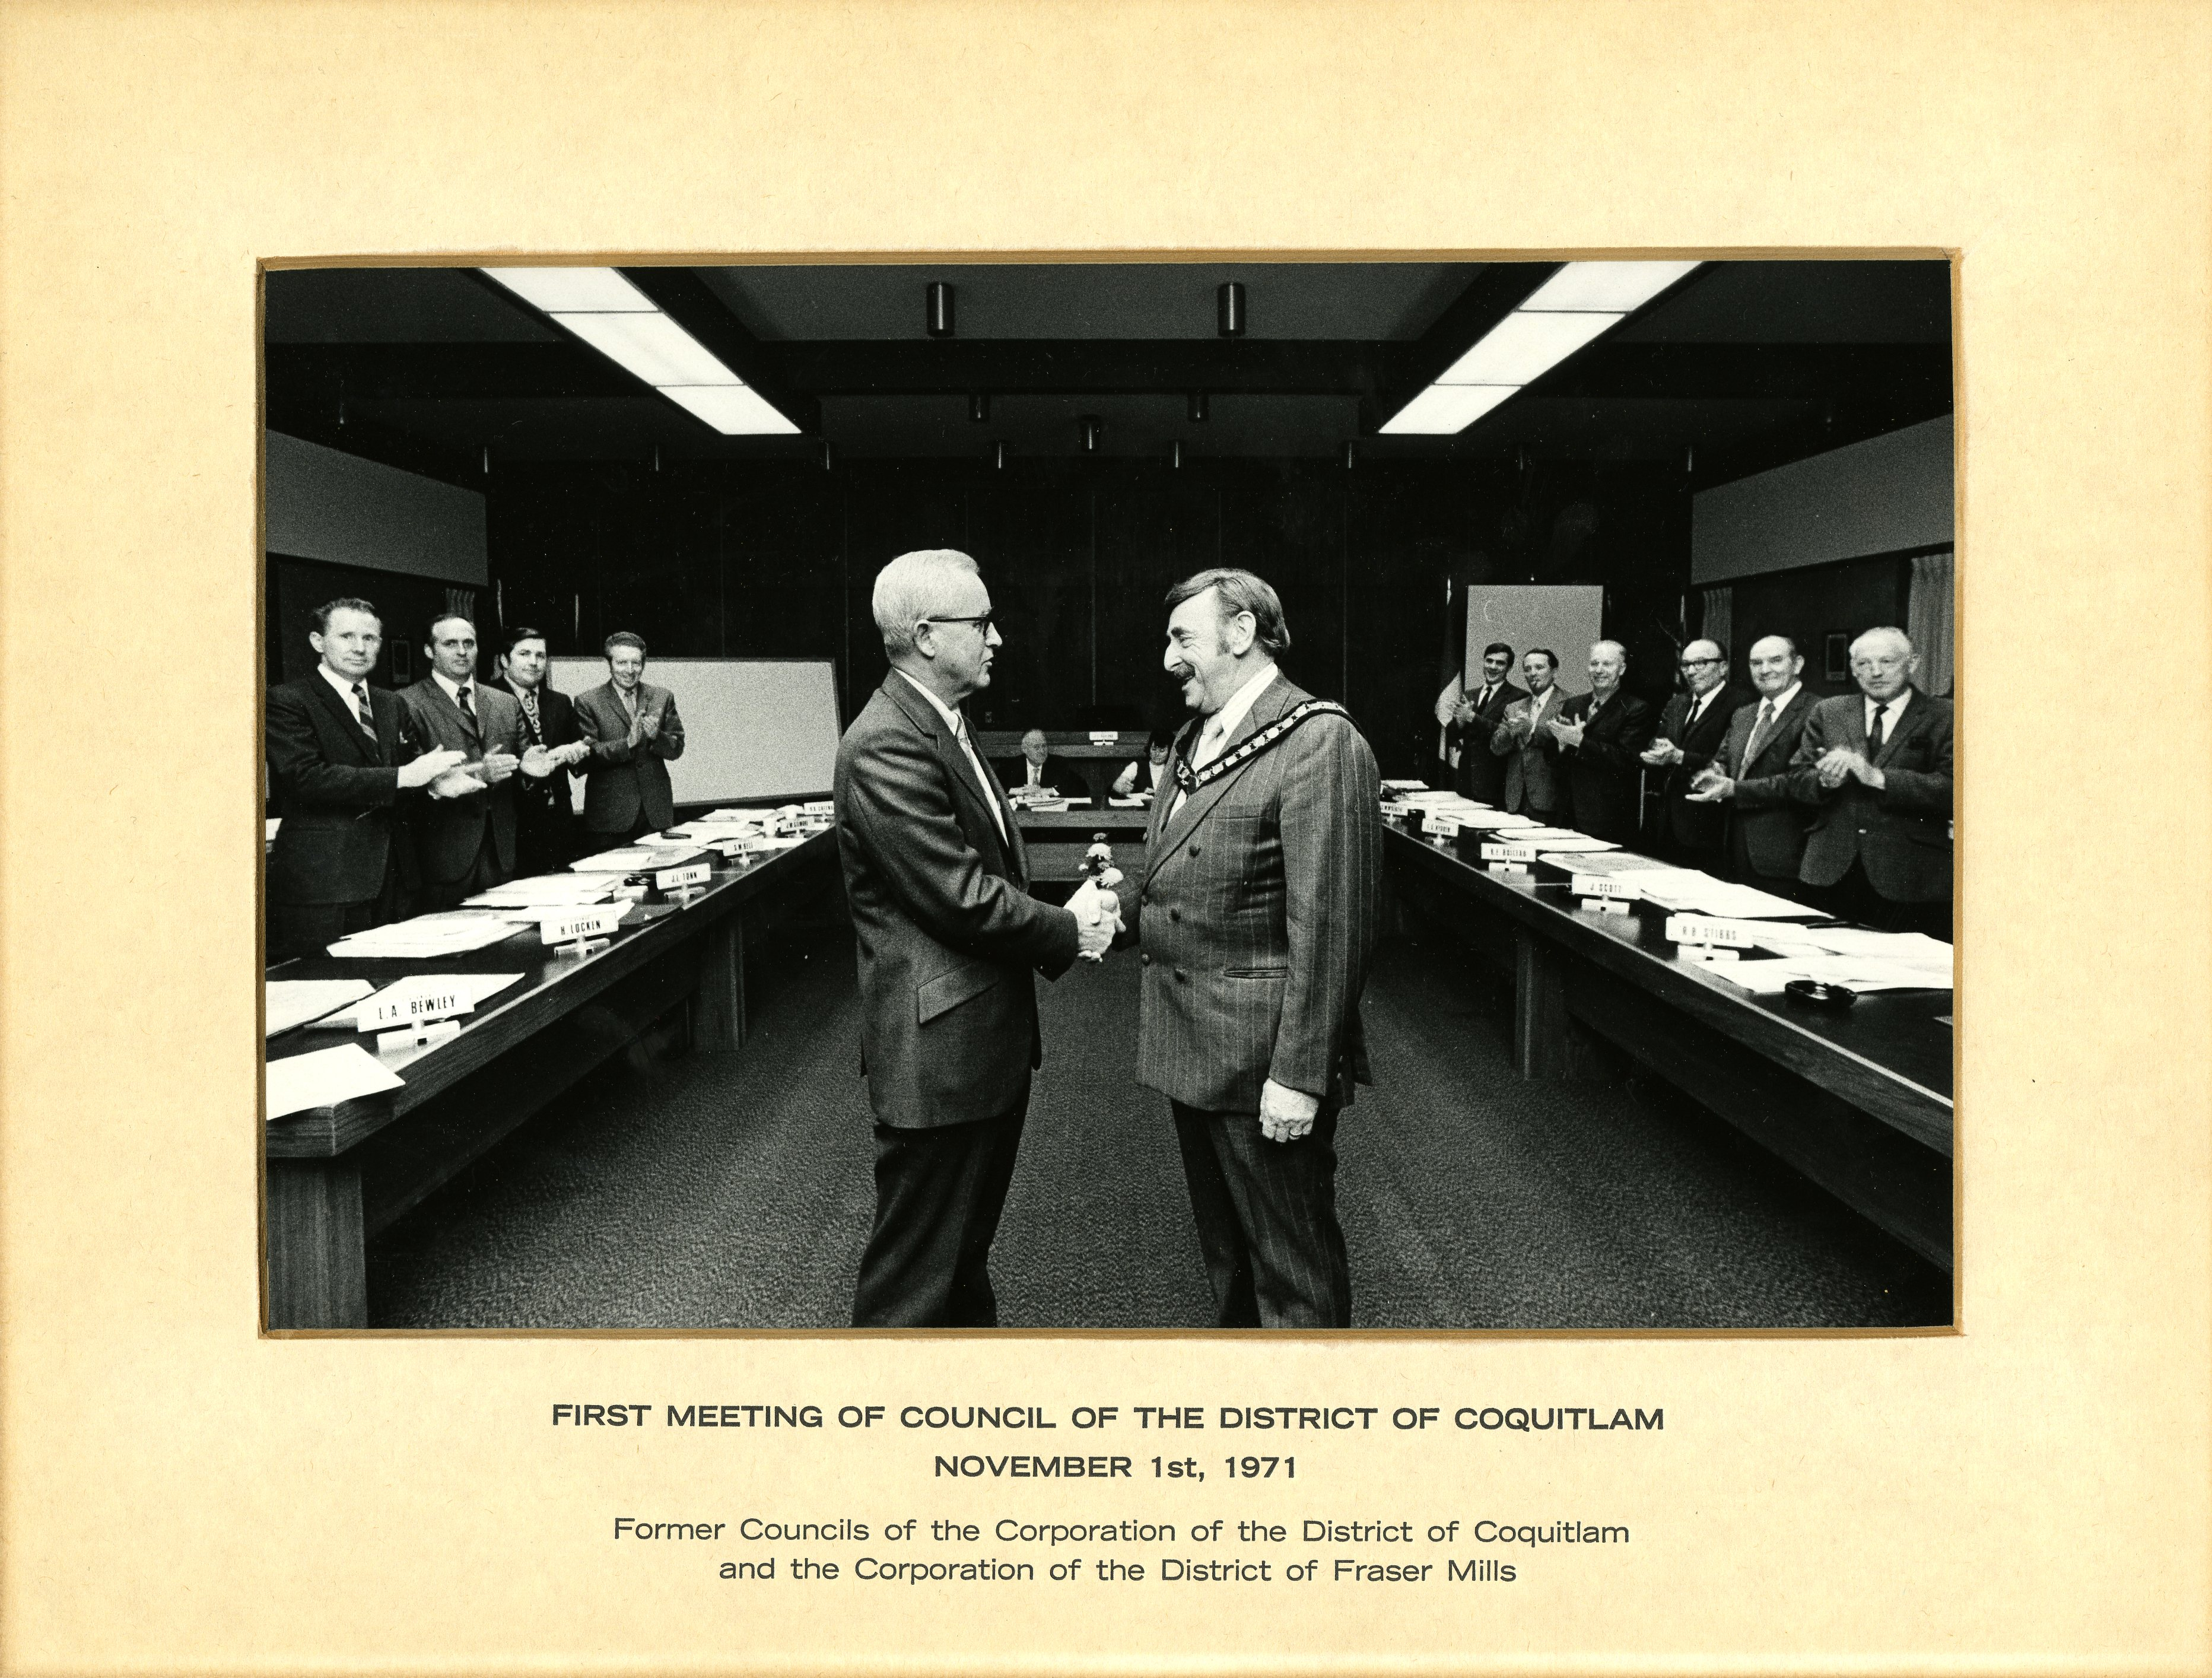 First Meeting of Council of the District of Coquitlam, November 1, 1971 (JPG) Opens in new window